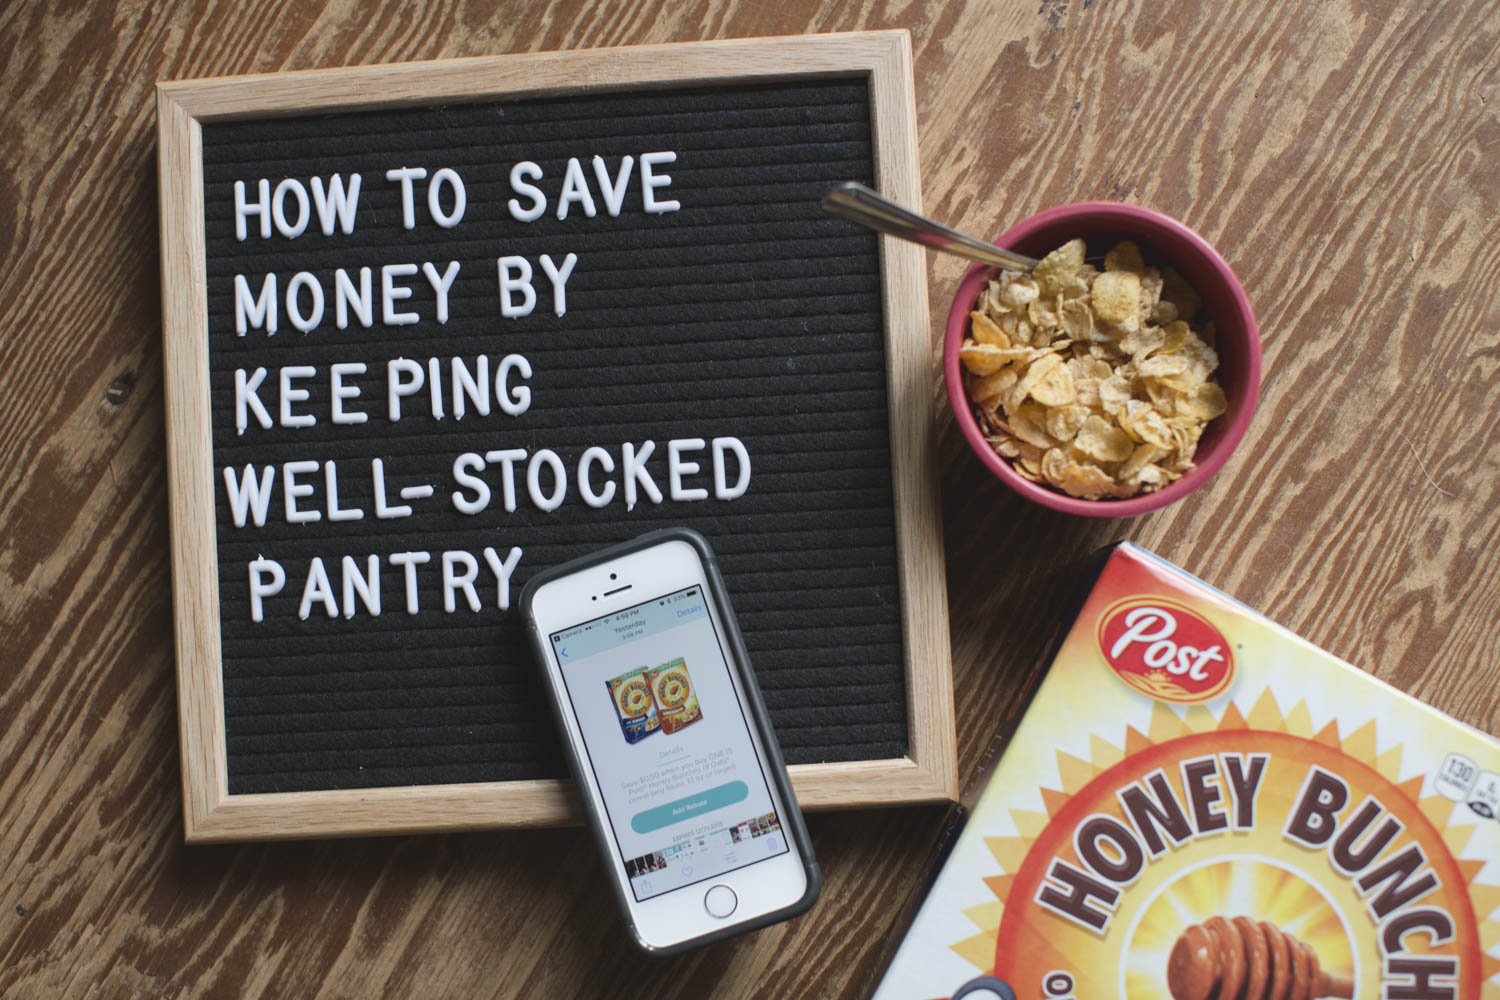 How to save money by having a well-stocked pantry and using the Hopster app.